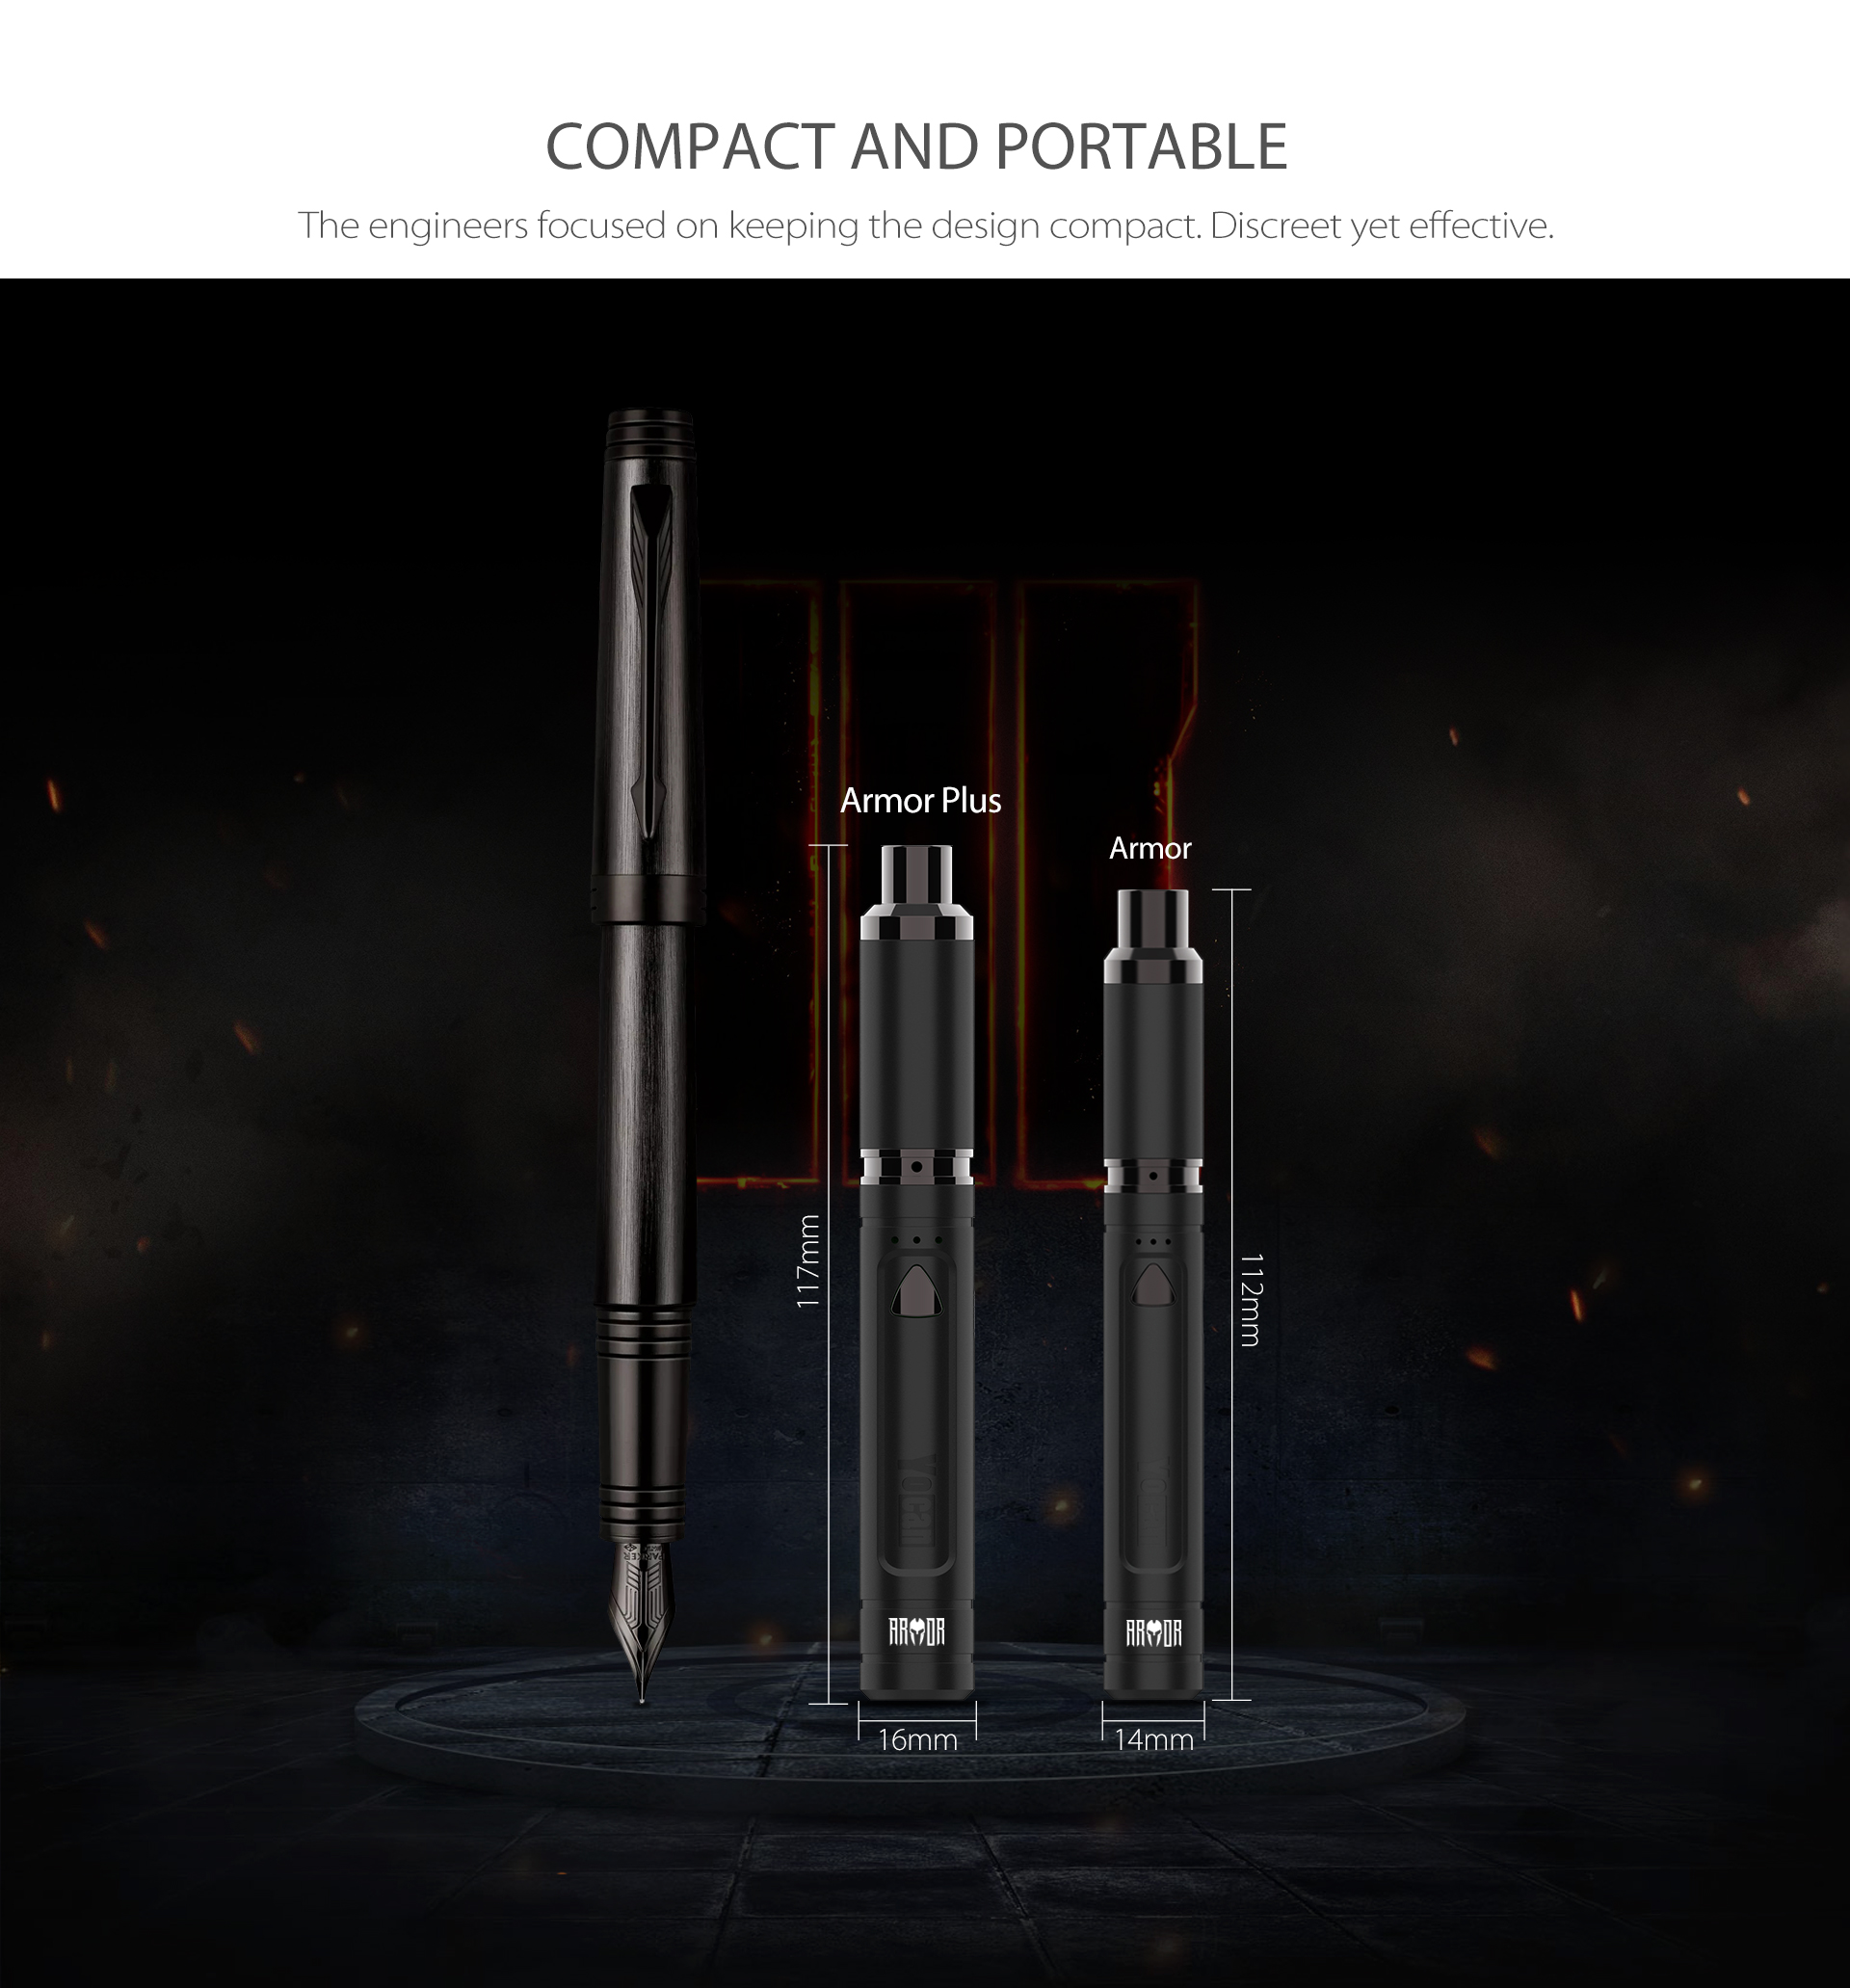 Yocan Armor Plus vape pen is compact, discreet yet effective.